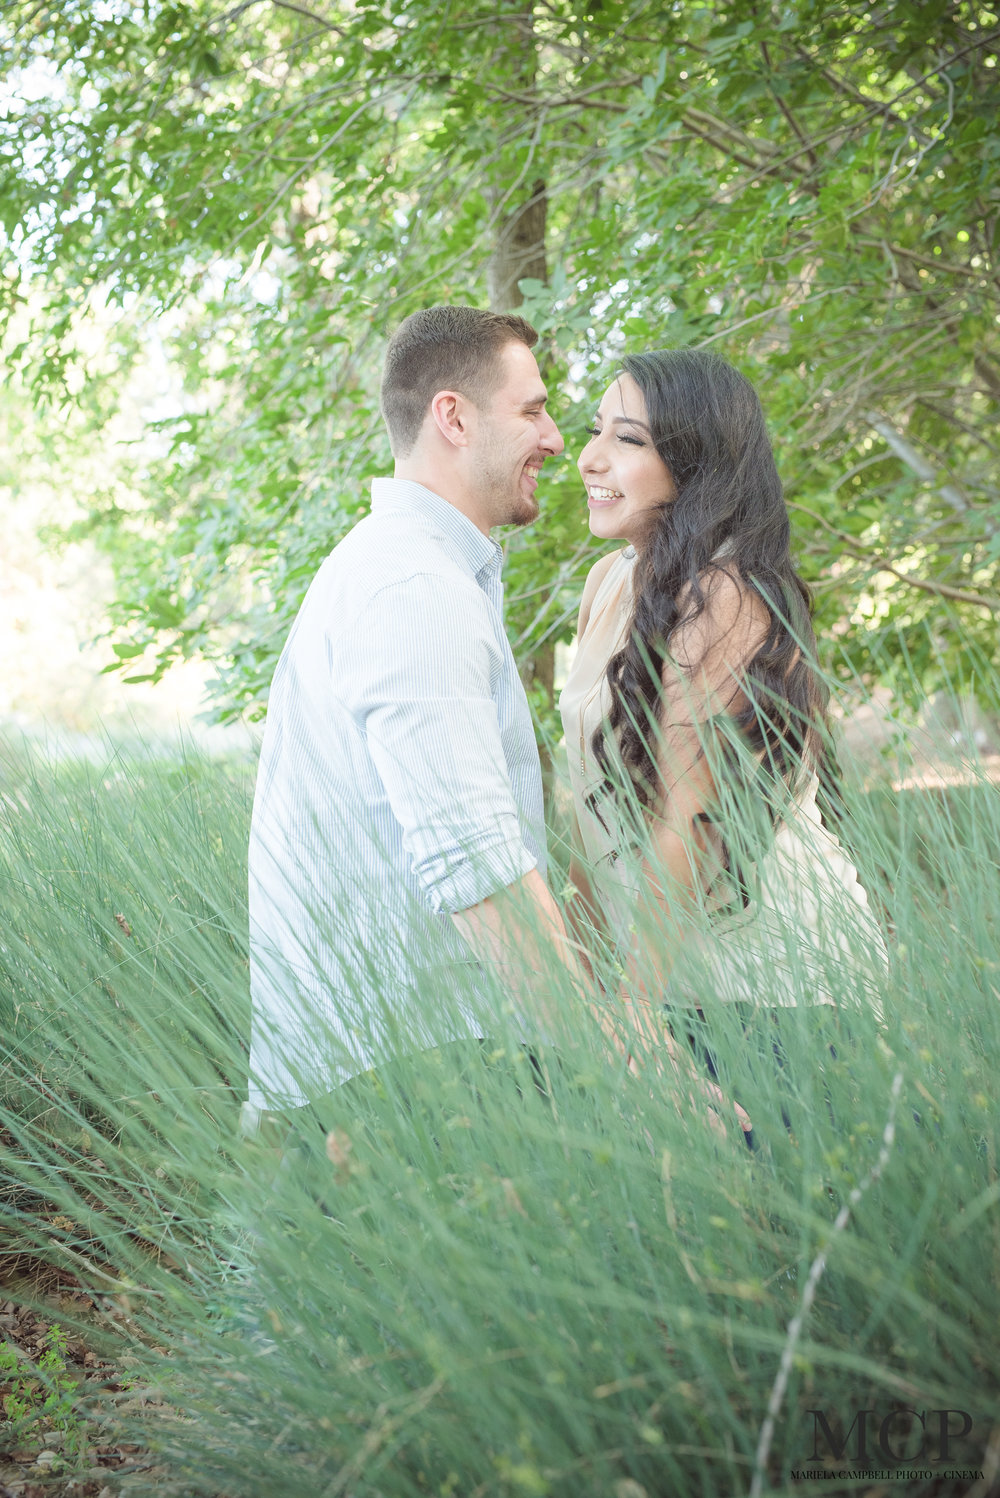 Marissa & Richard Engagement - MCP-30.jpg